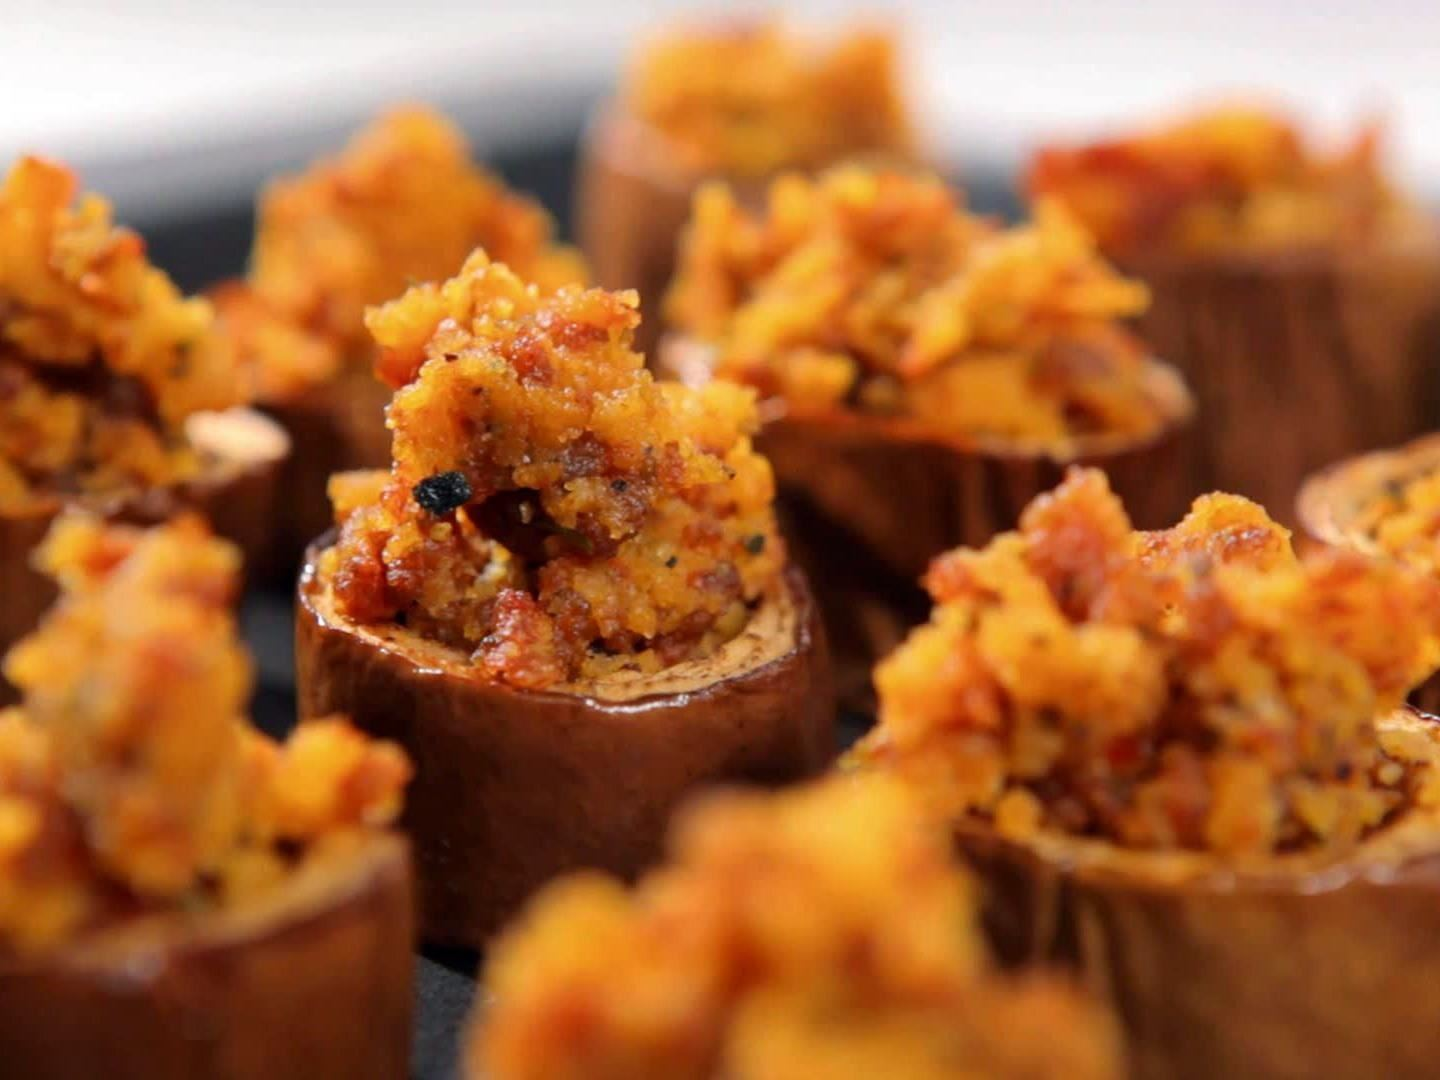 8 Edible Cups That Make Finger Foods a Snap